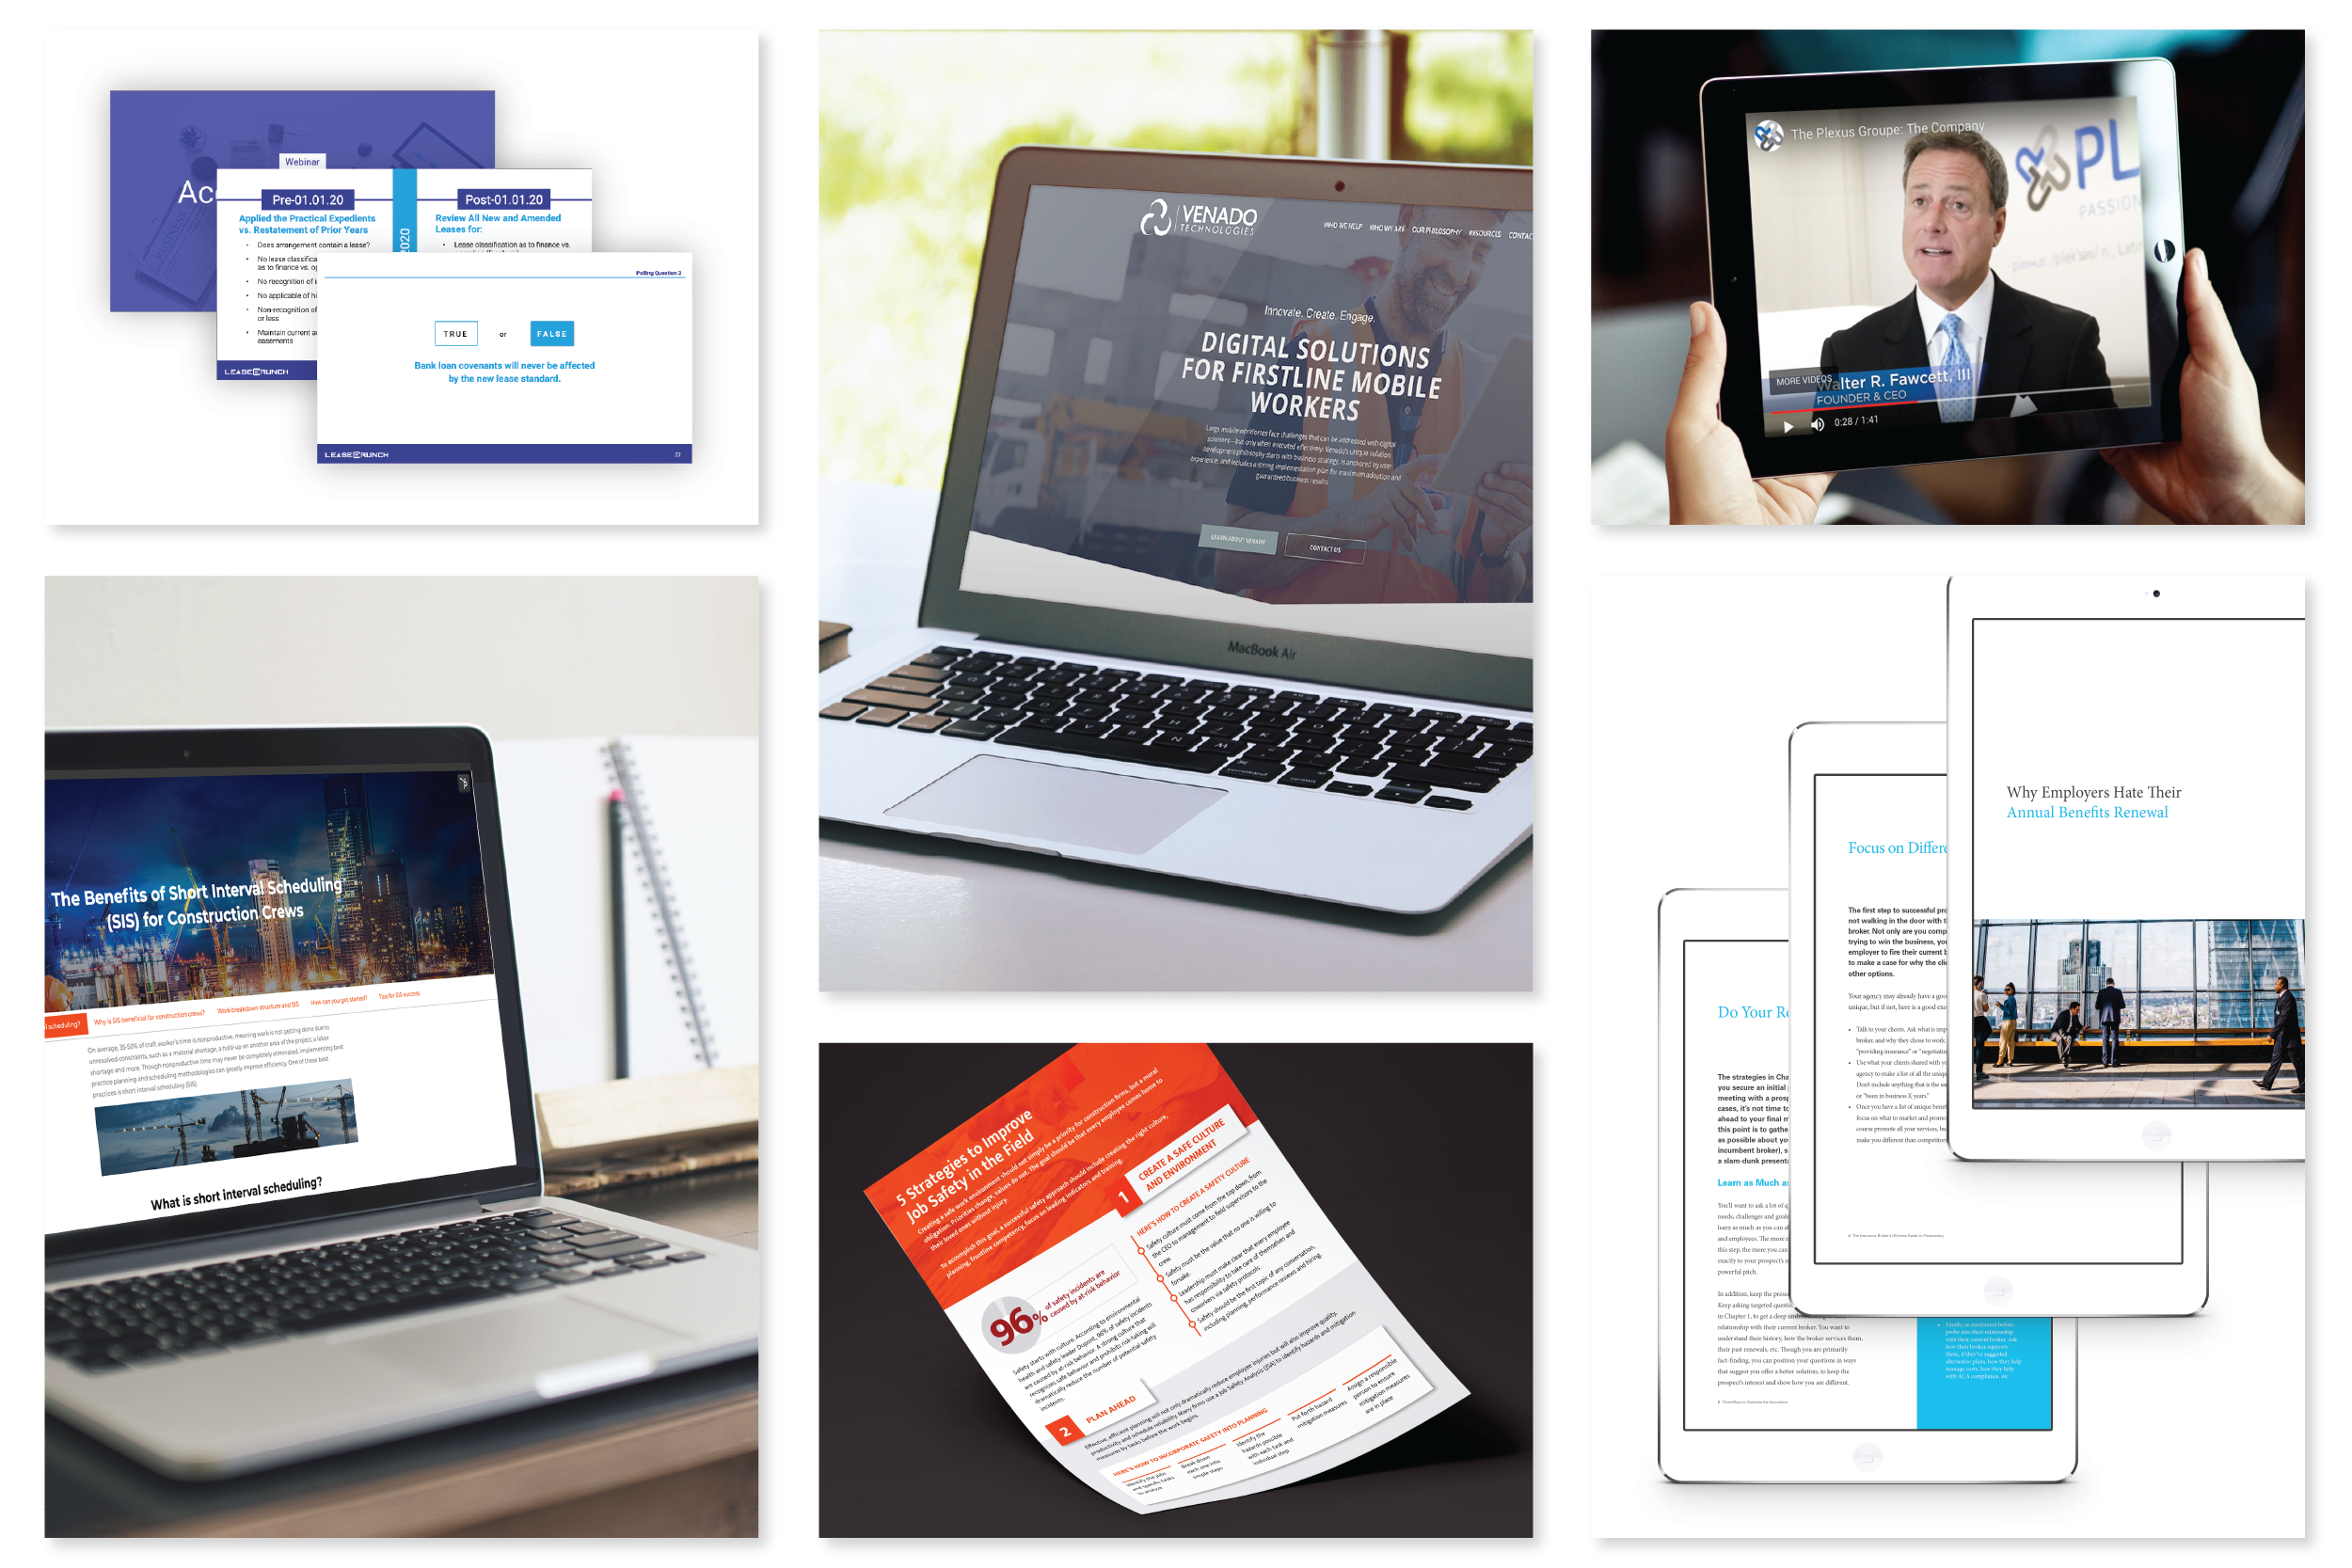 Portfolio displaying different services Accelity offers such as video, web, and content design